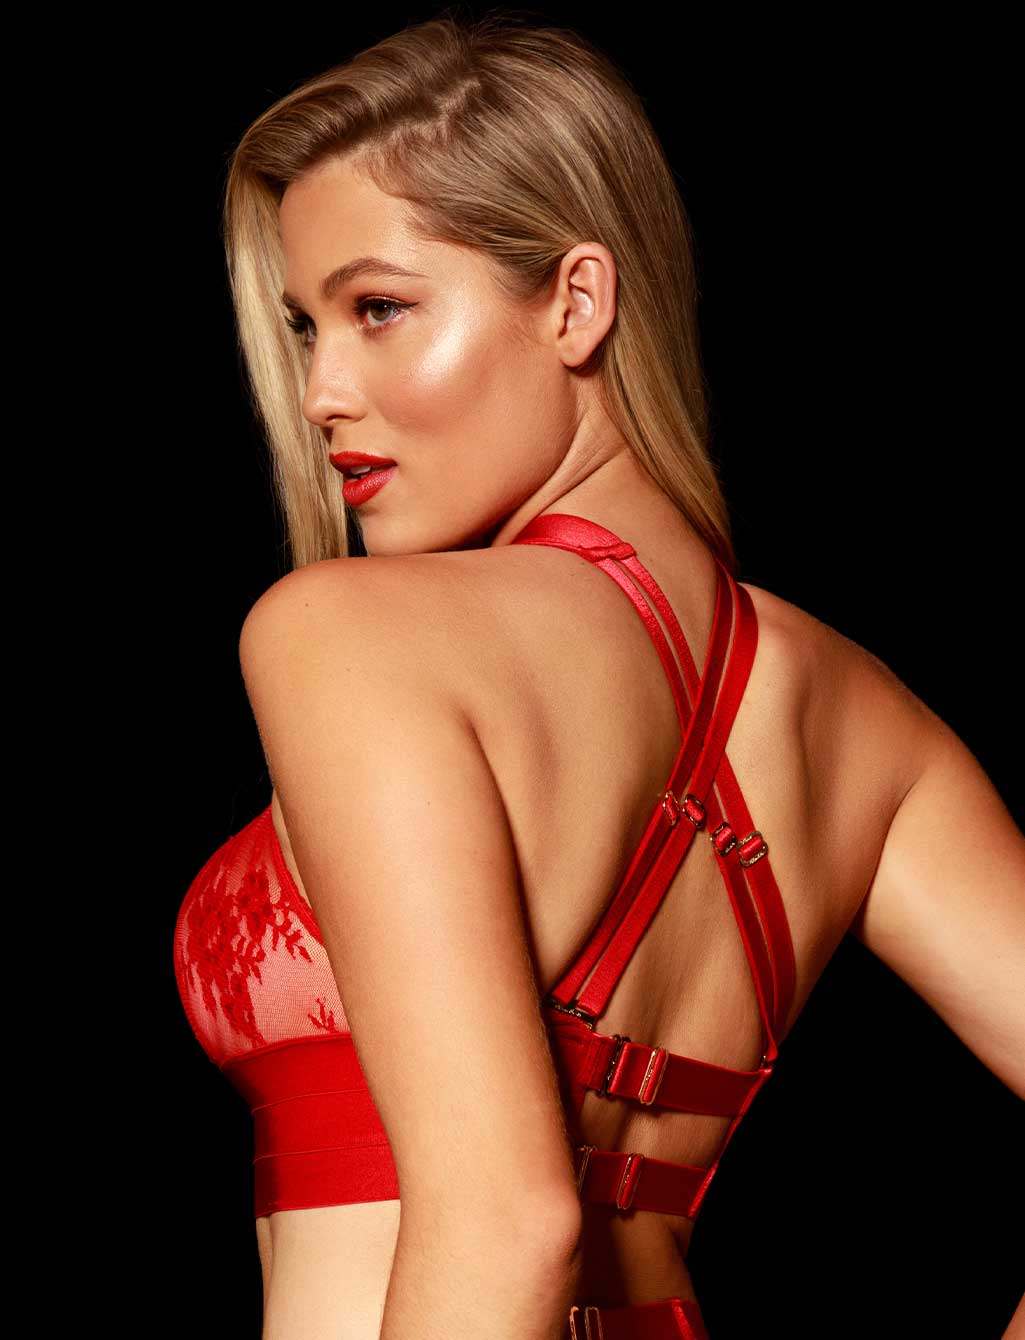 Lucille Red Sexy Lingerie | Honey Birdette